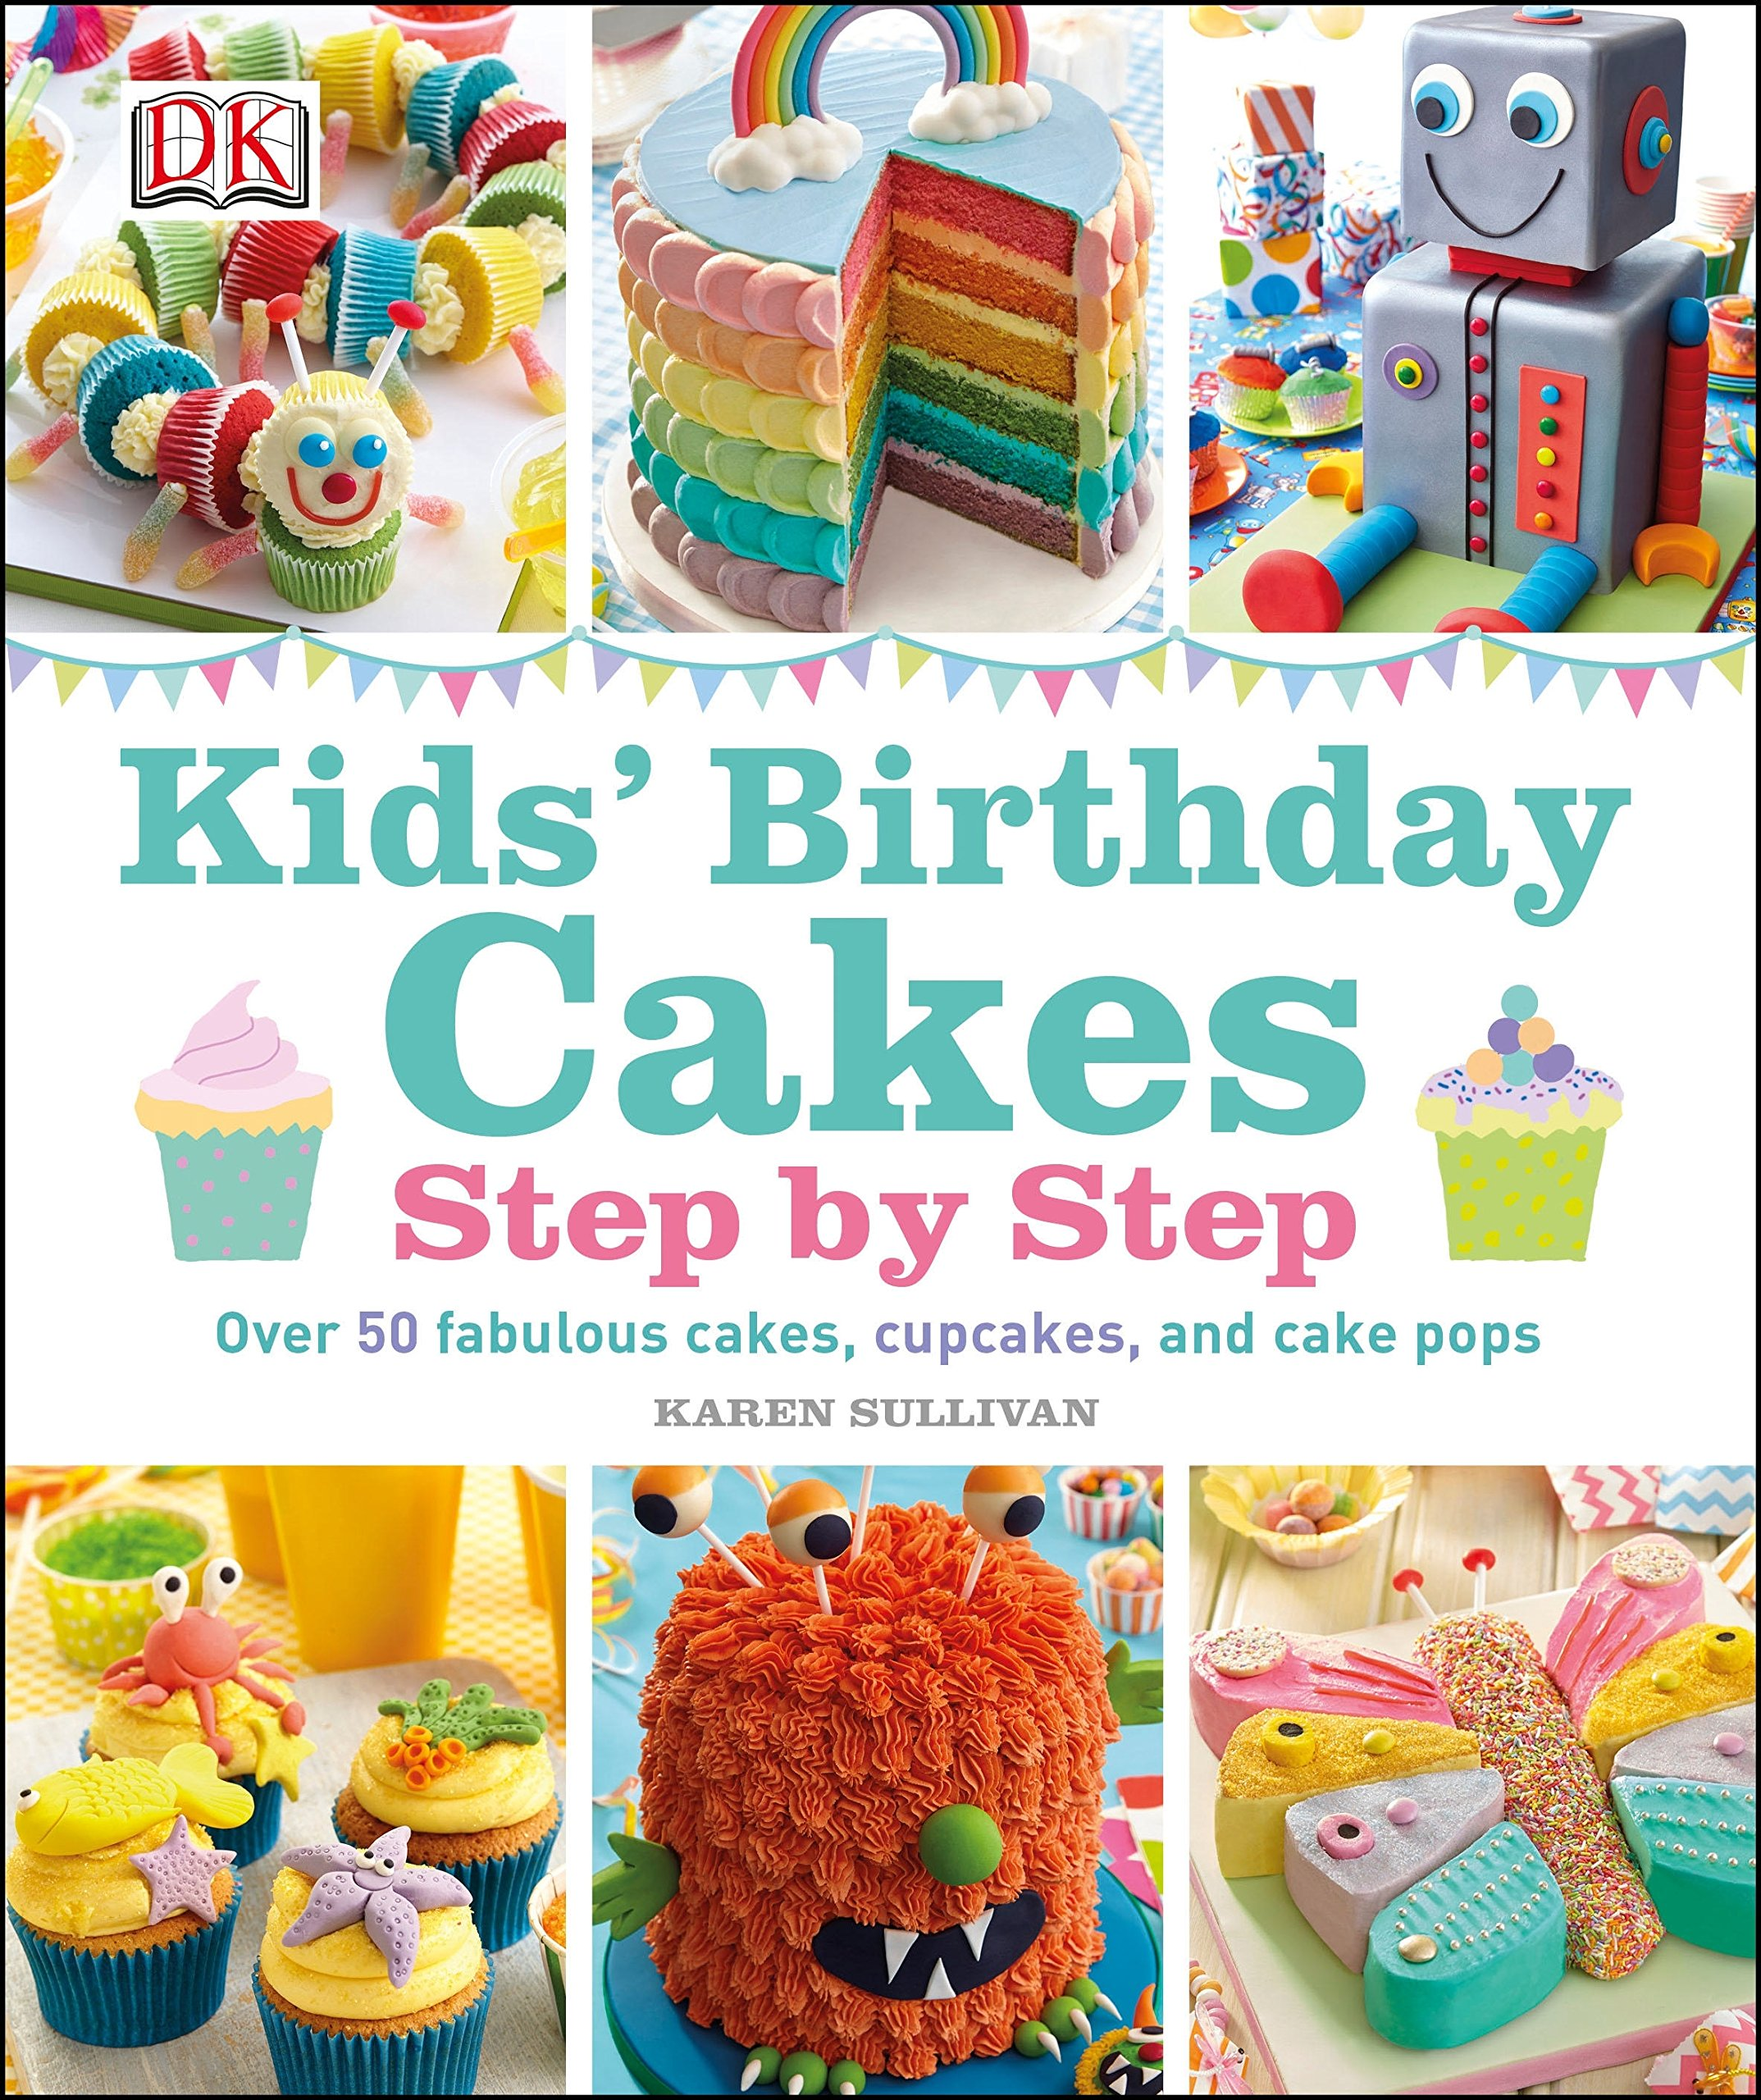 Swell Kids Birthday Cakes Amazon Co Uk Sullivan Karen 9781409357193 Personalised Birthday Cards Sponlily Jamesorg